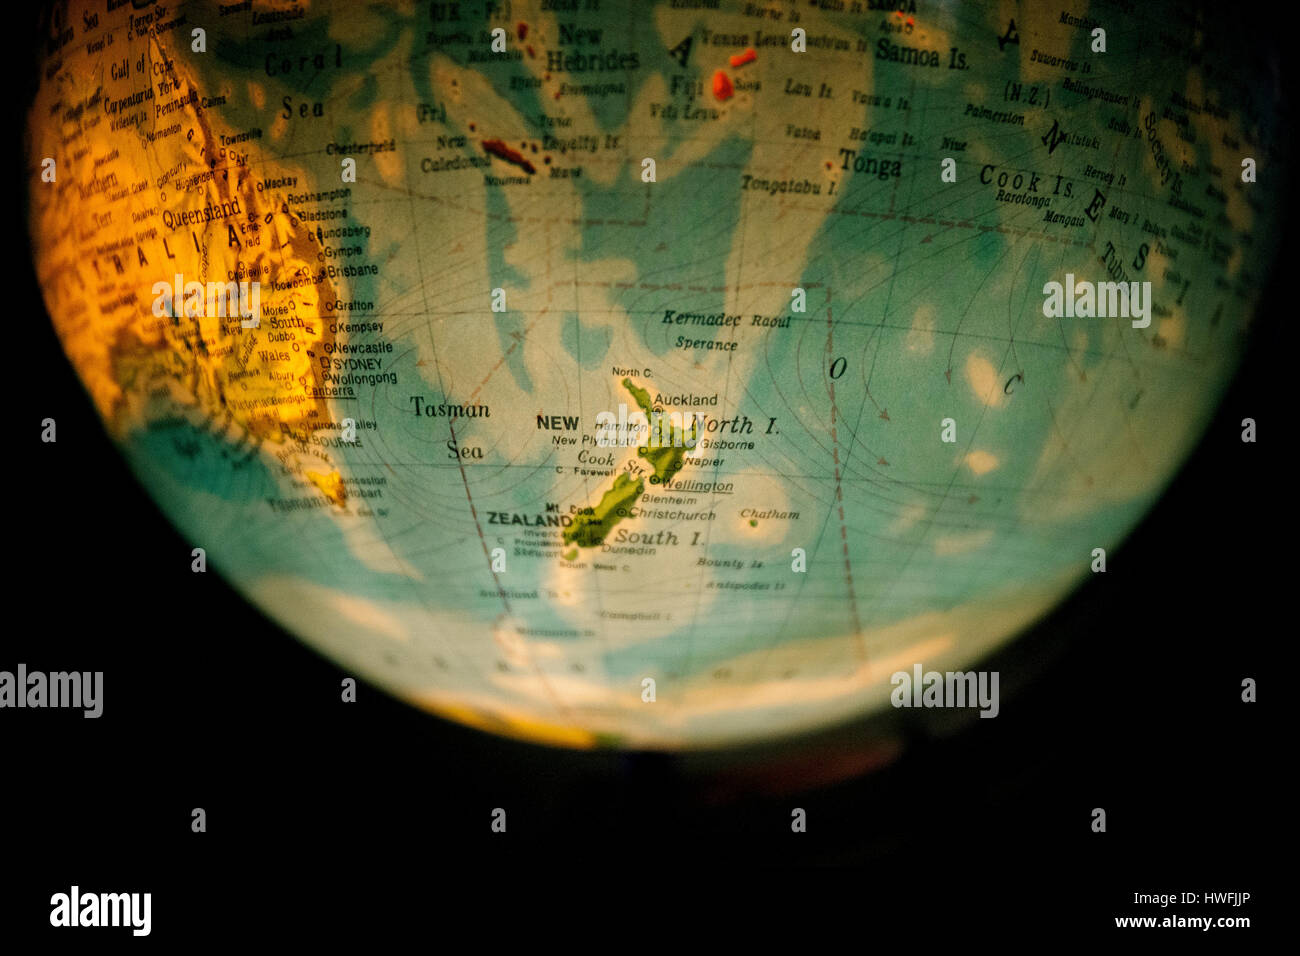 close up of old fashioned world globe a ball shaped map lit from within focusing on Mongolia china - Stock Image